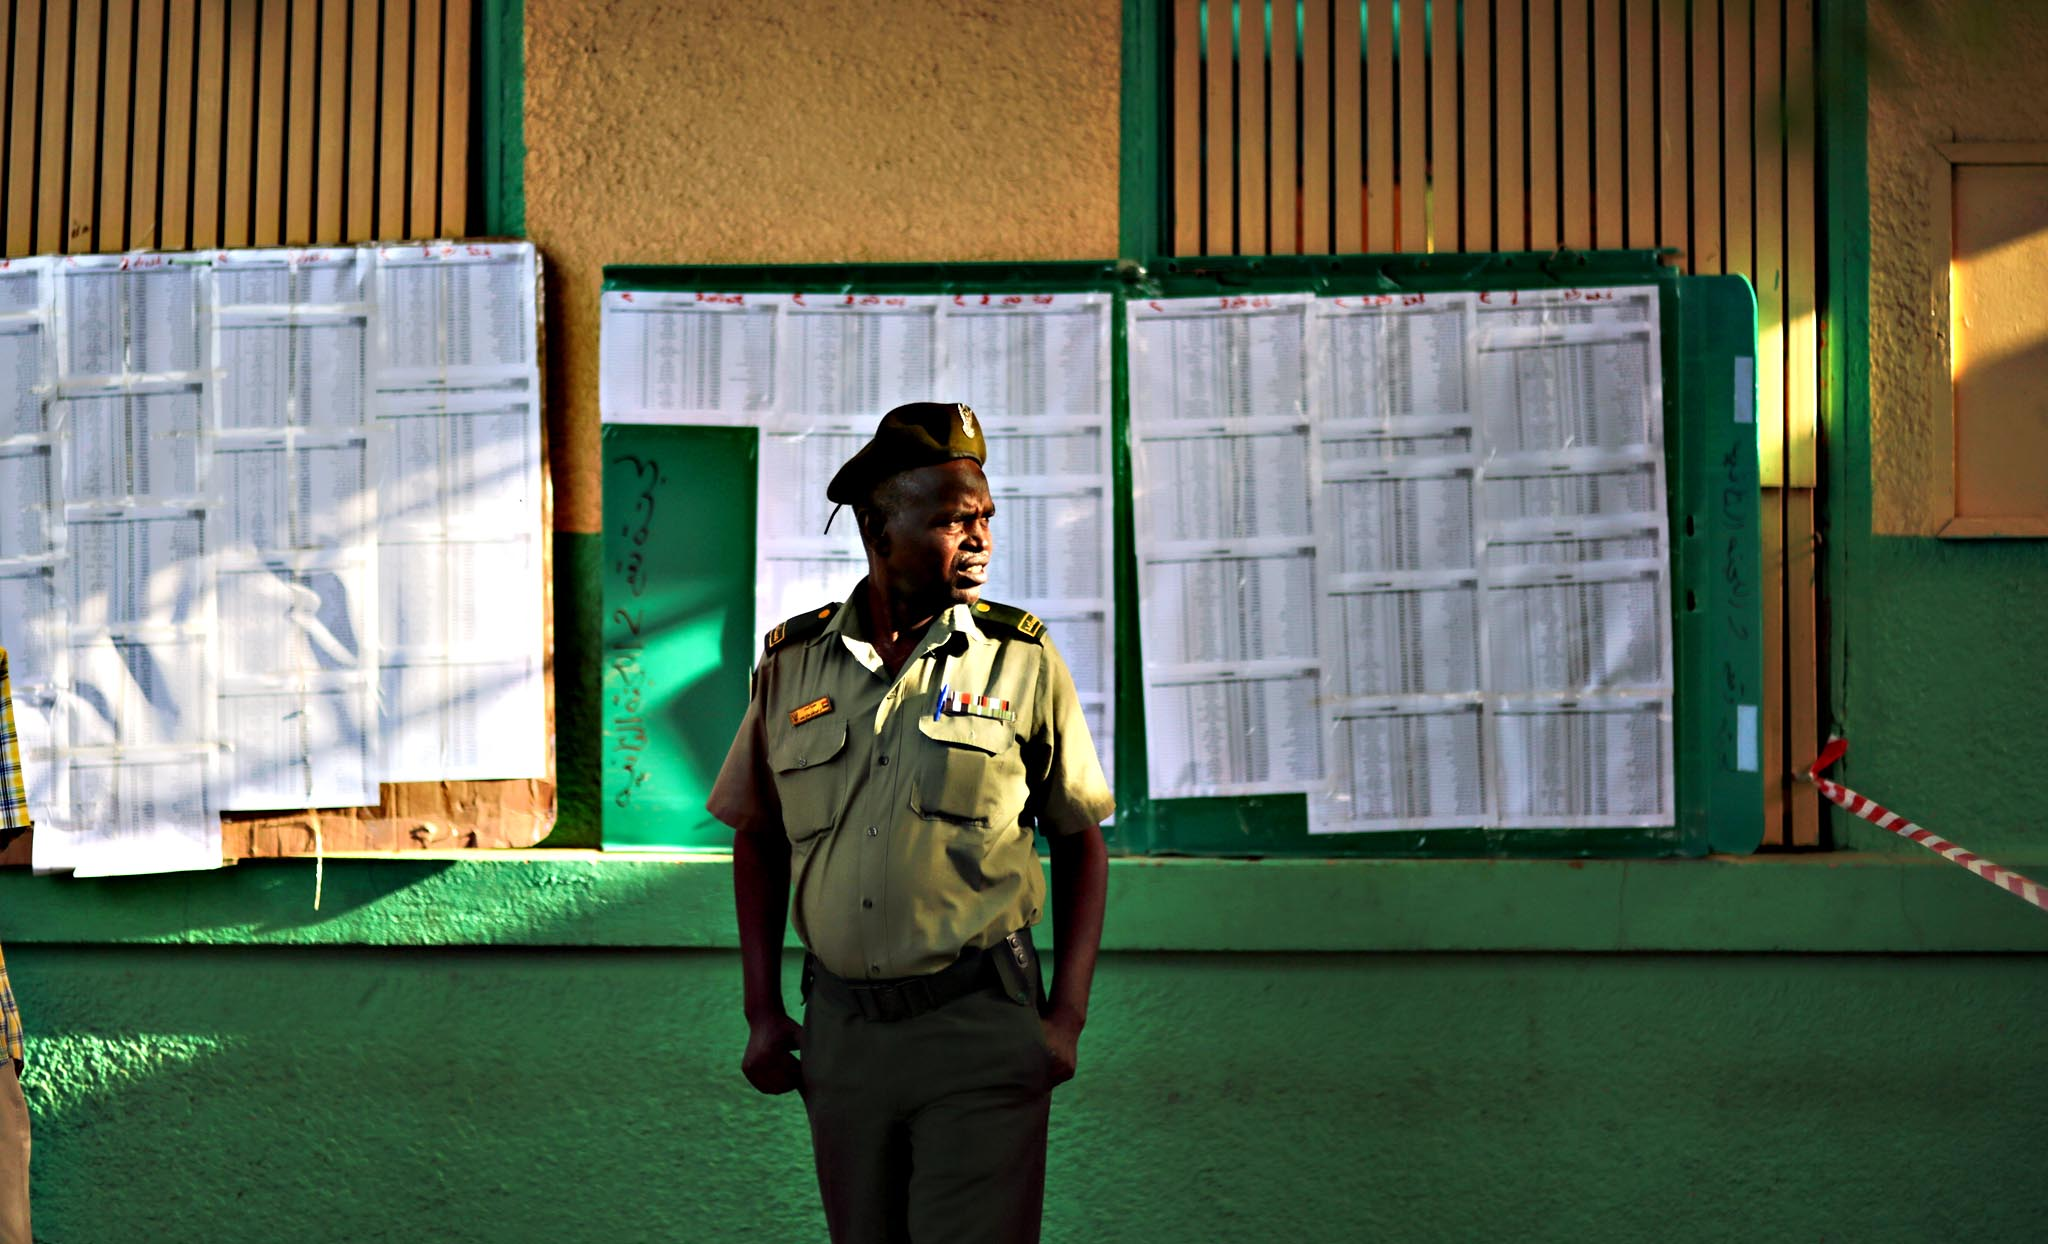 A member of the Sudanese security forces waits outside a polling station where he is registered to vote, in Khartoum, Sudan, Monday, April 13, 2015.